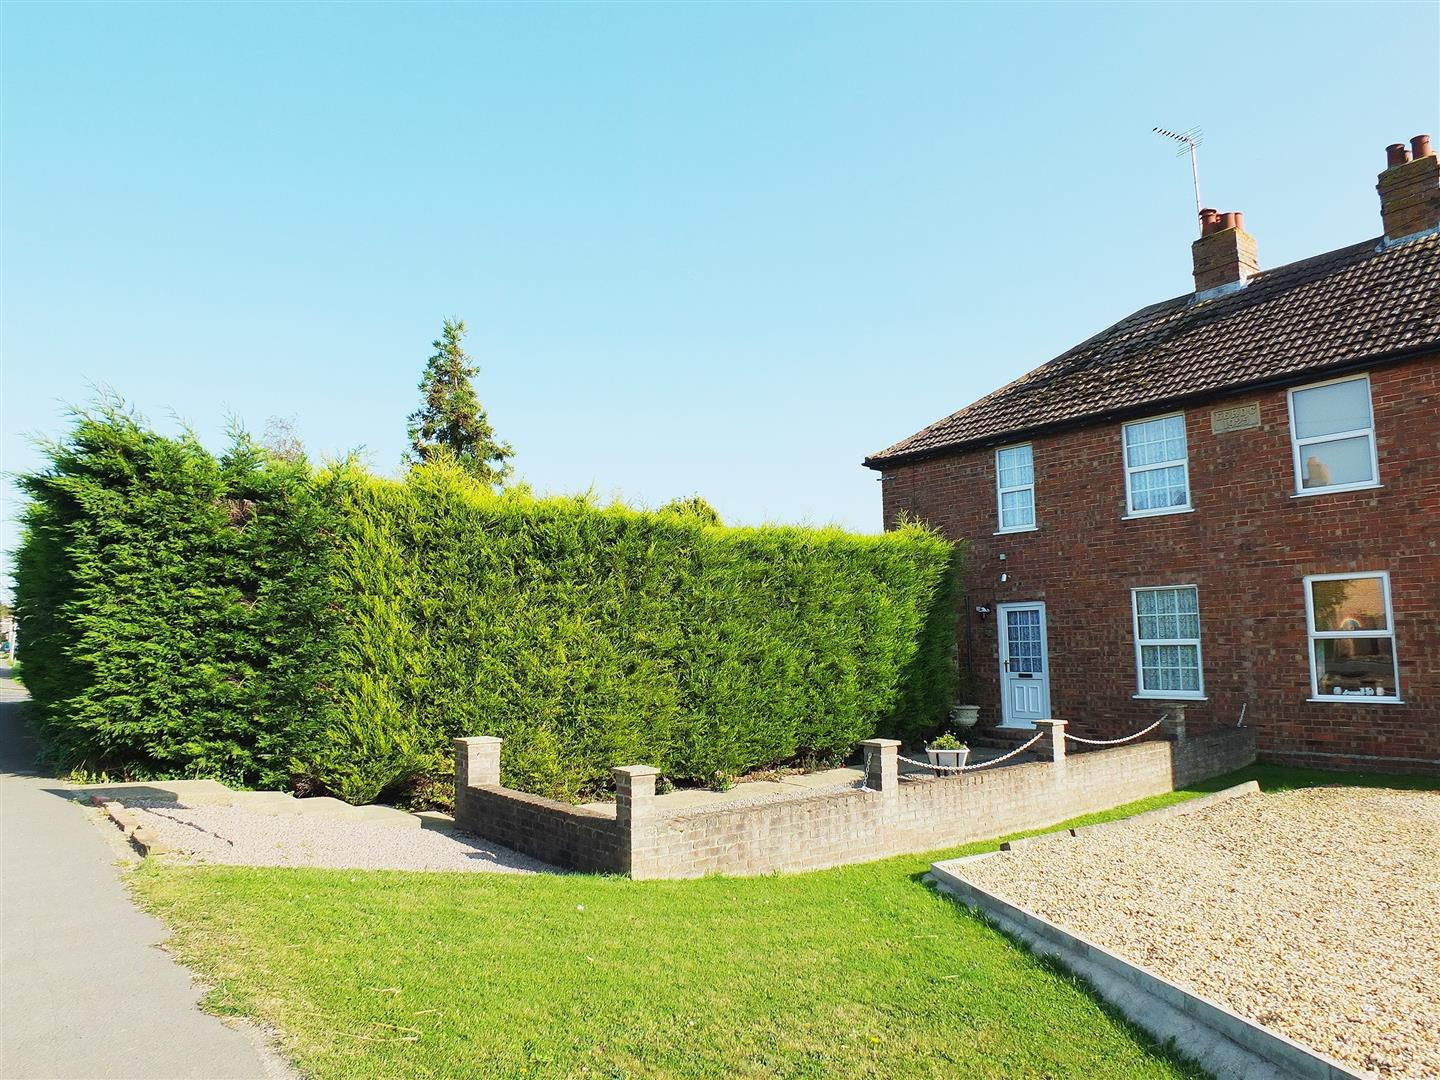 3 bed semi-detached house for sale in Sutton St. James Spalding, PE12 0EF - Property Image 1